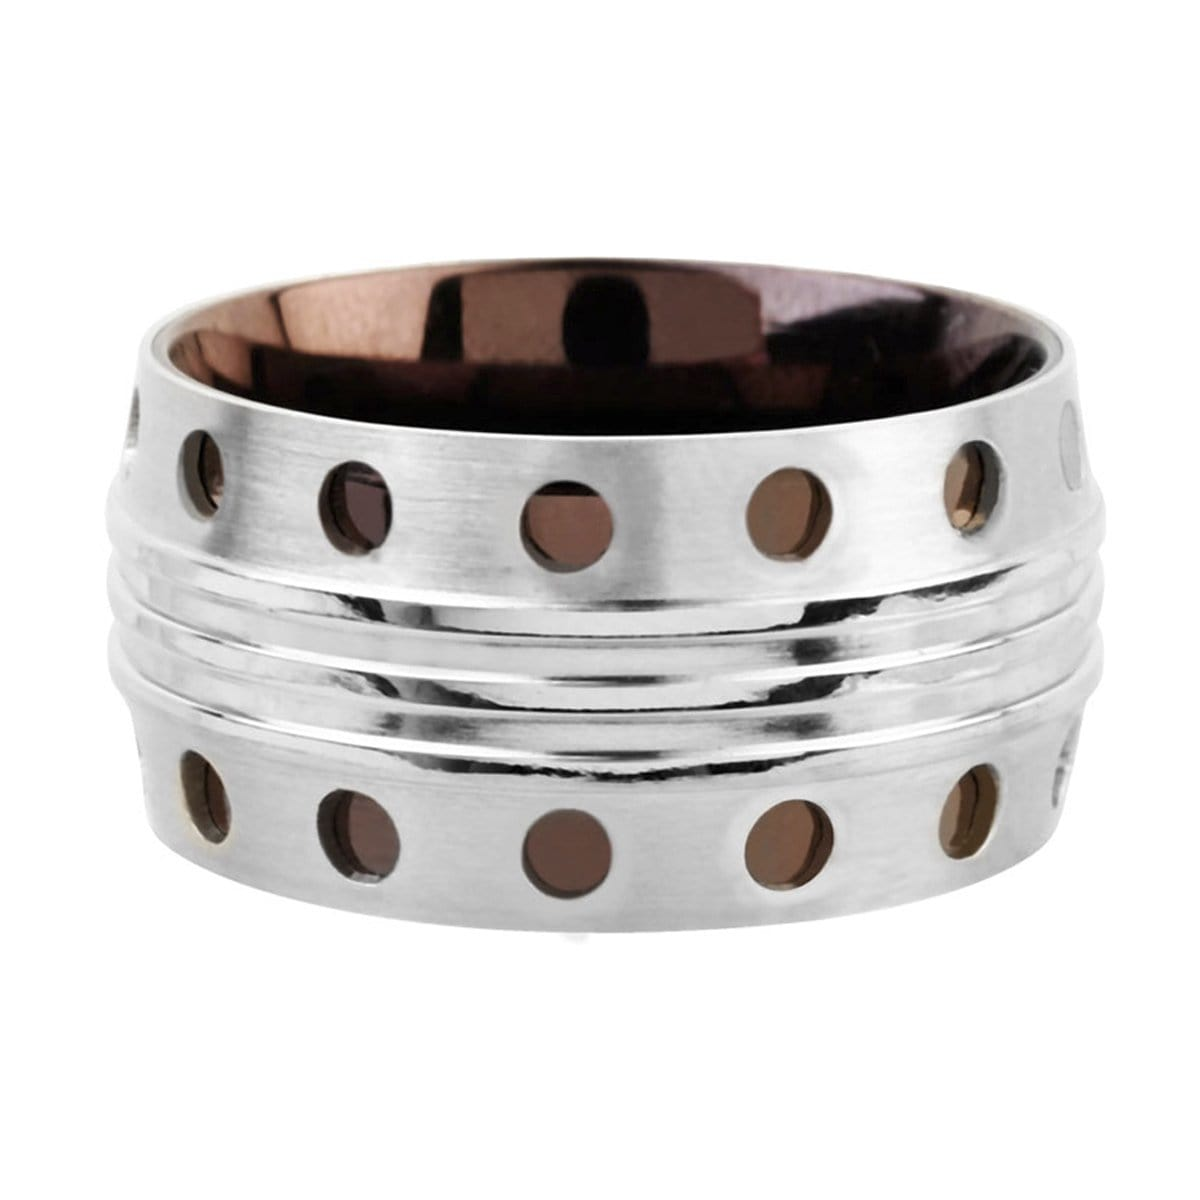 Silver and Cappuccino Stainless Steel Plated Dot Pattern Ring Rings